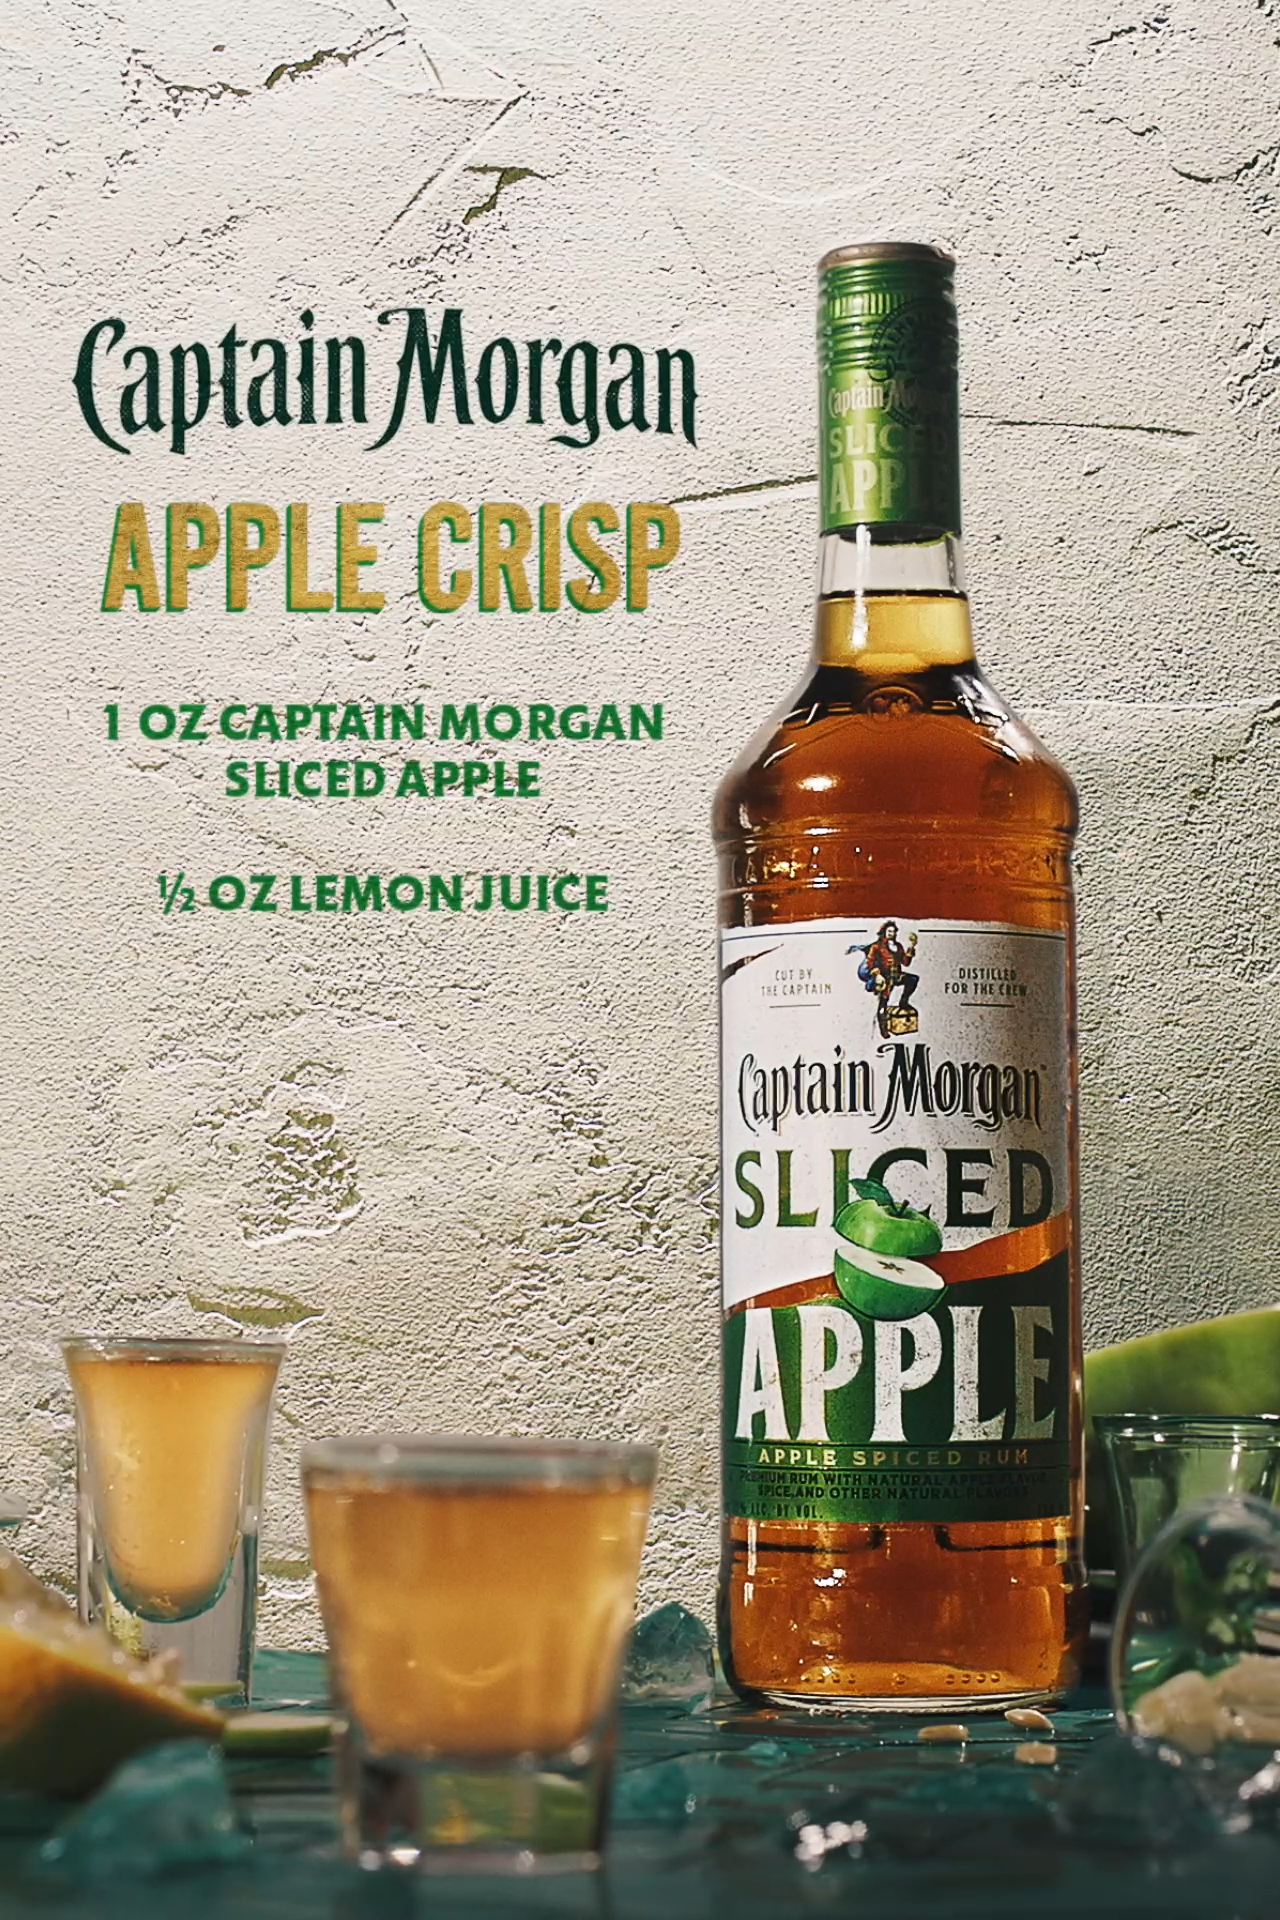 Apple Crisp Shots Mean Small Glasses And Big Flavor In 2020 Alcohol Drink Recipes Mixed Drinks Recipes Mixed Drinks Alcohol